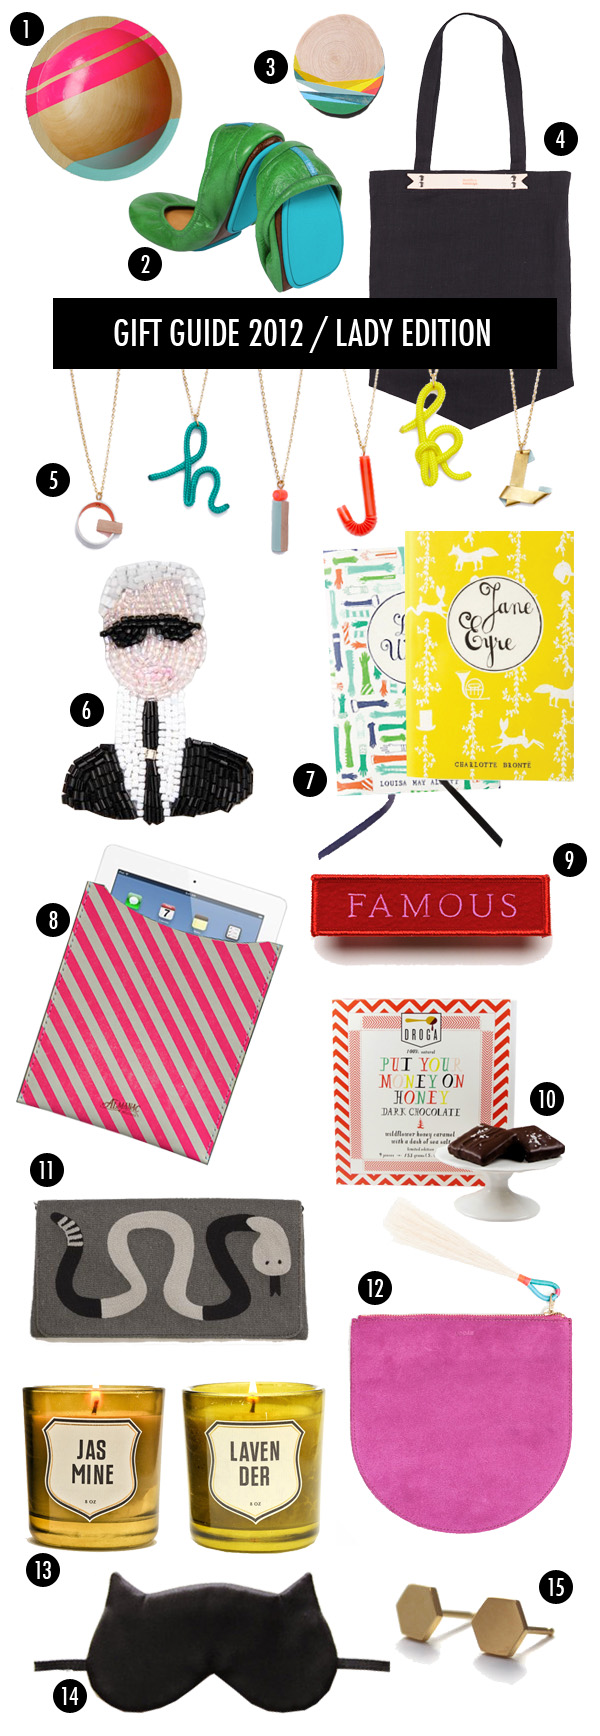 brooklyn bride holiday giftguide for the girls 2012